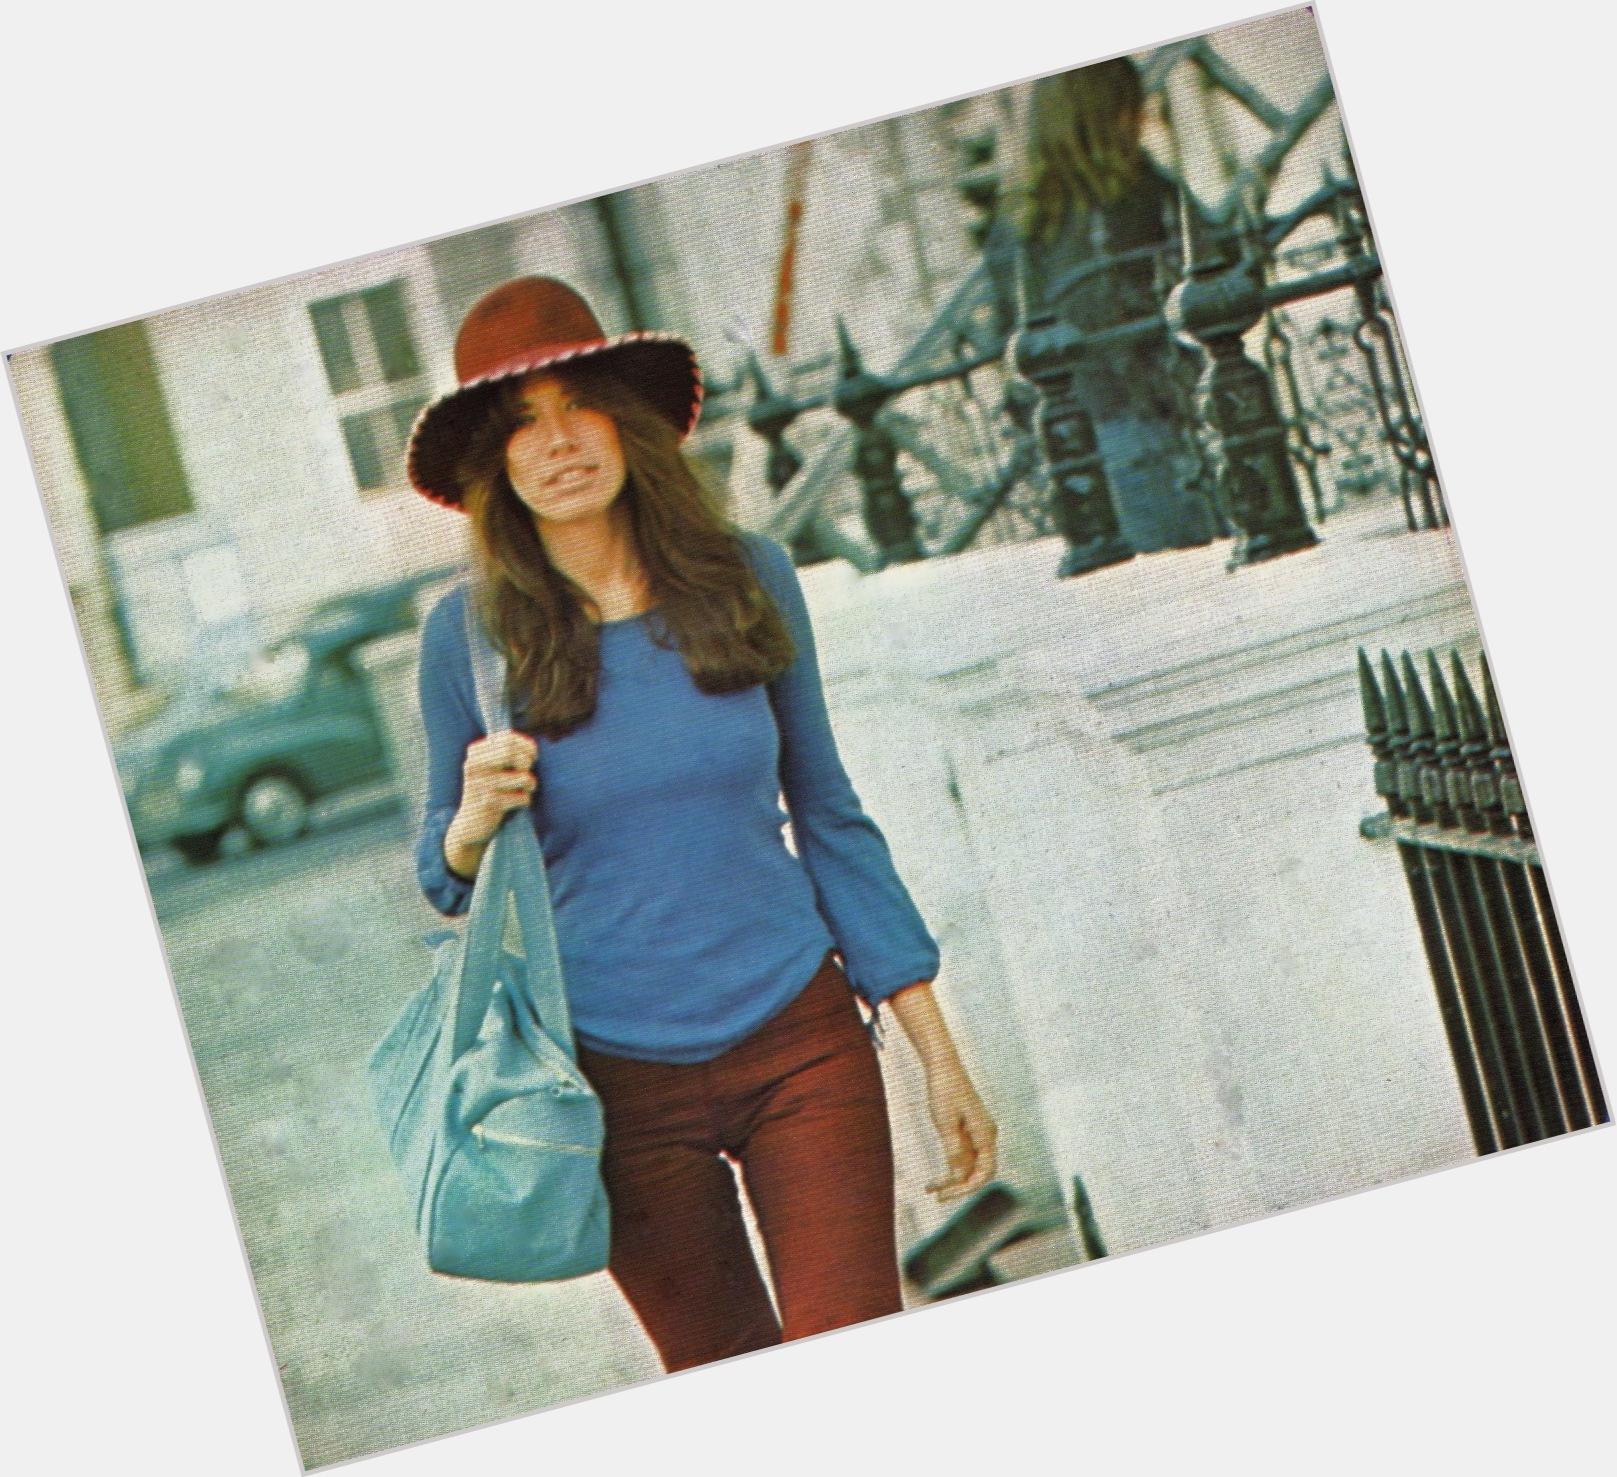 carly simon 2012 7.jpg